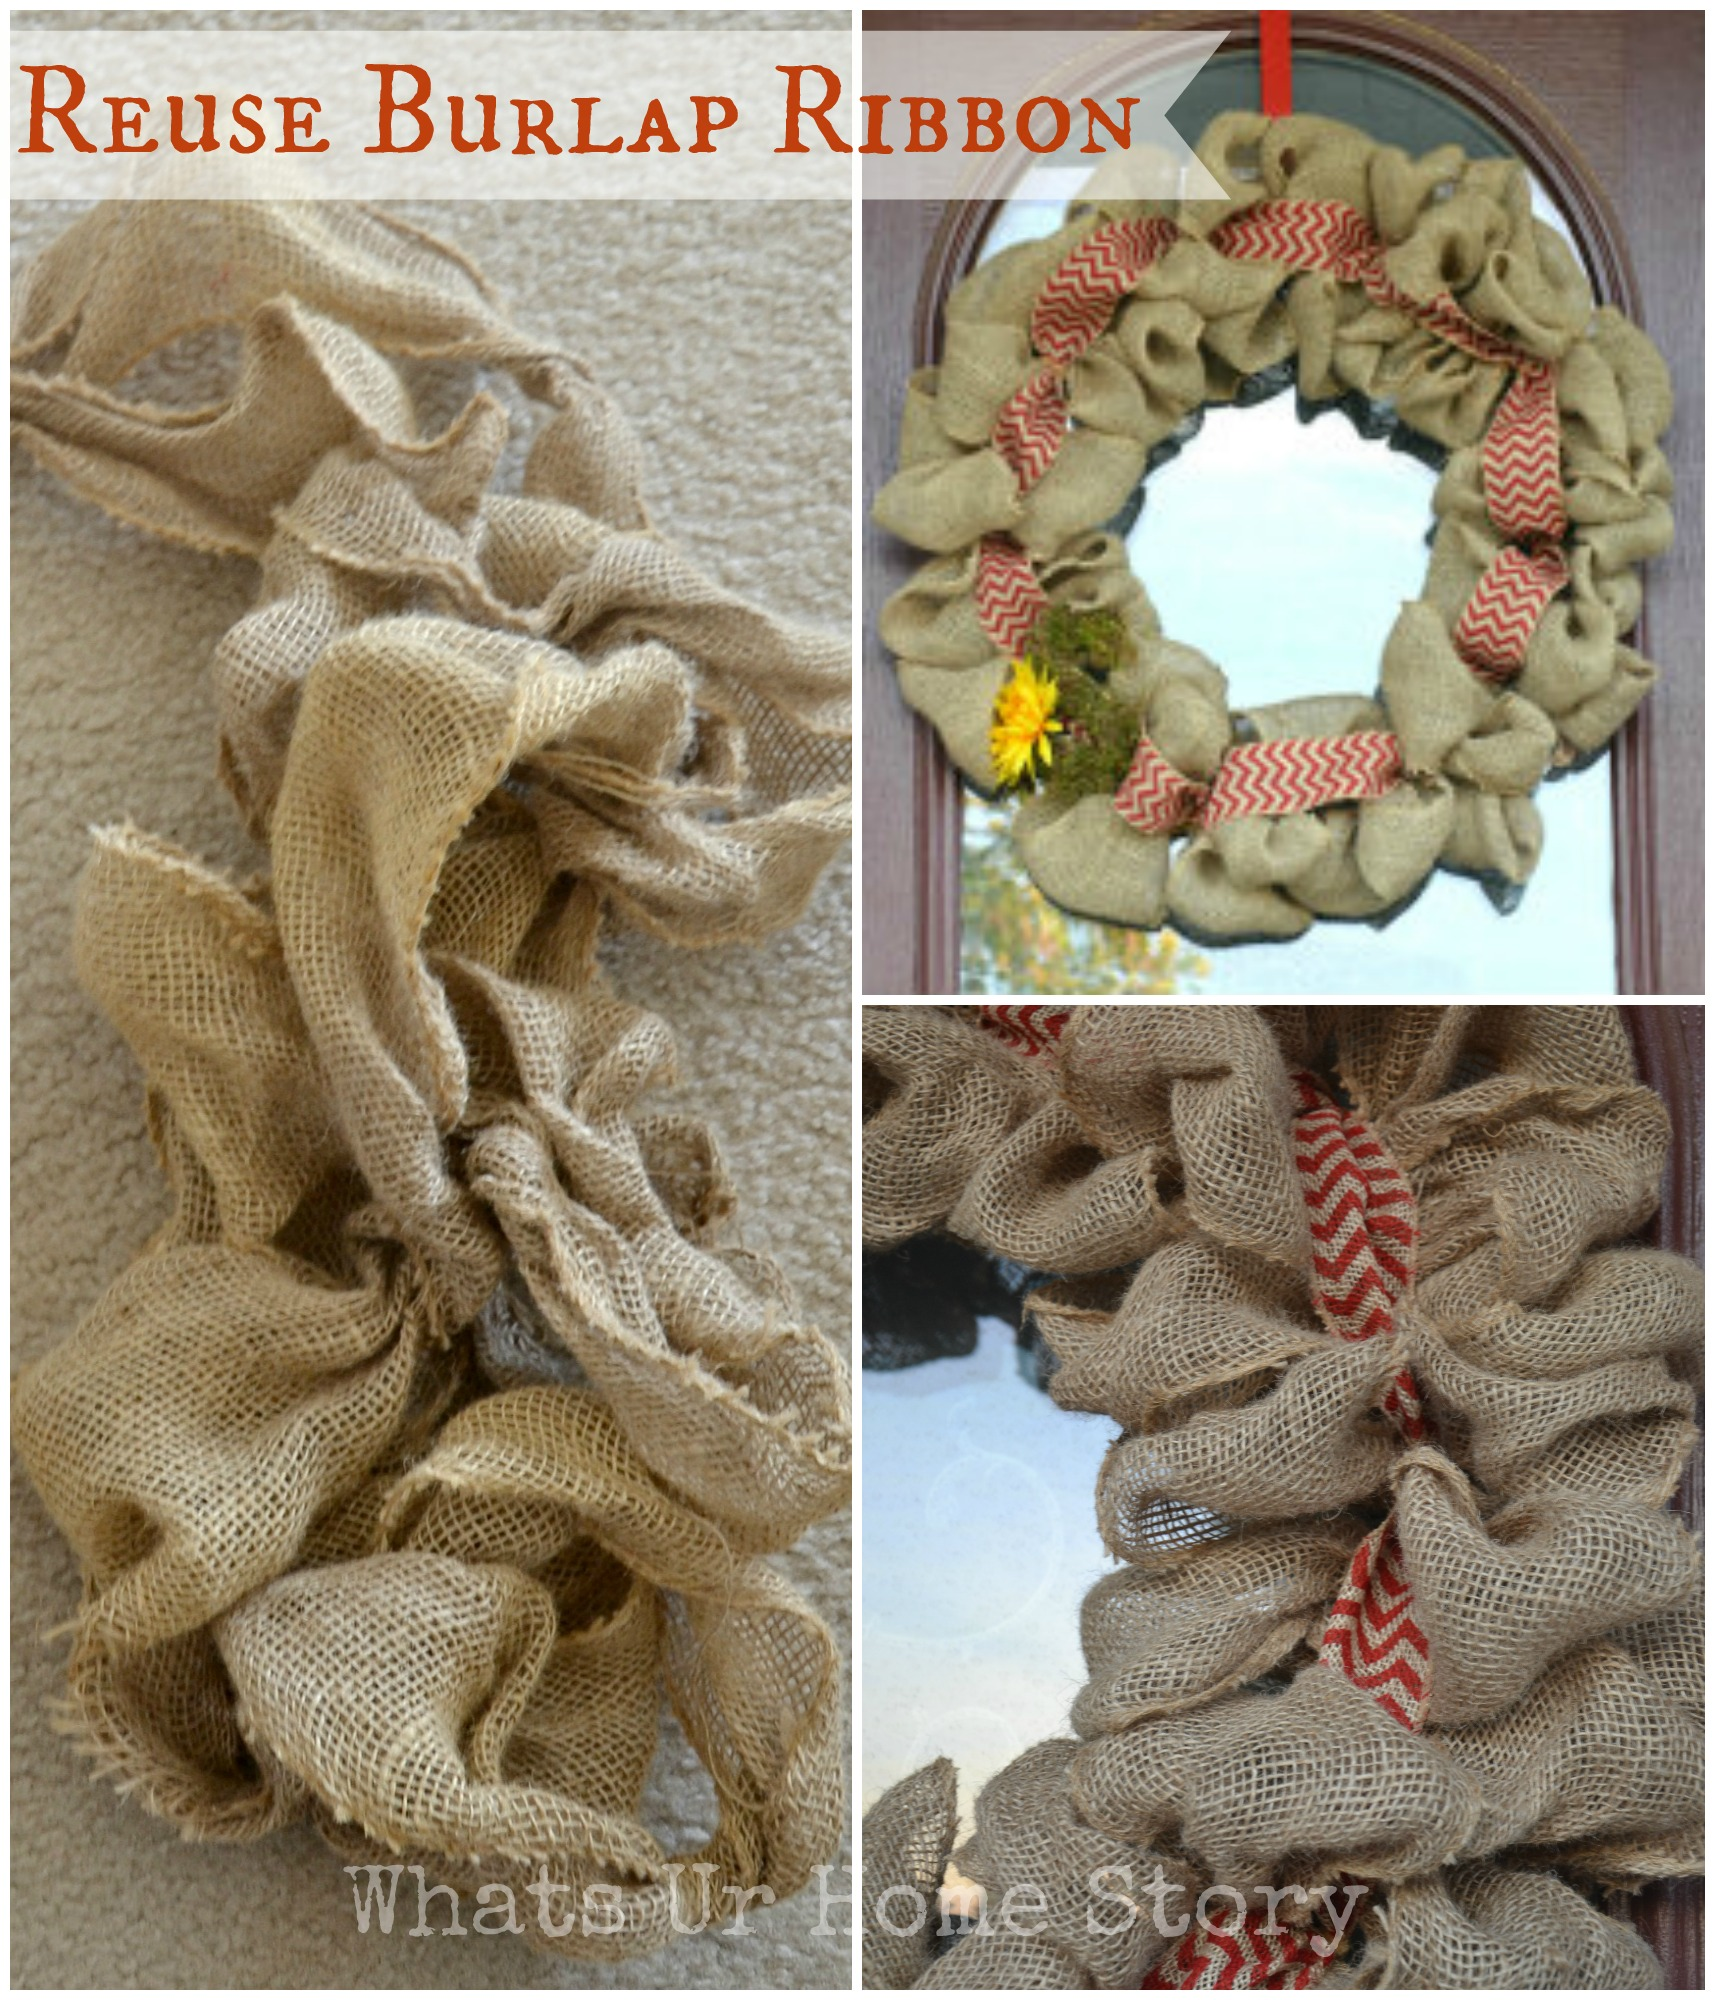 How to reuse burlap ribbon whats ur home story for How to use burlap ribbon